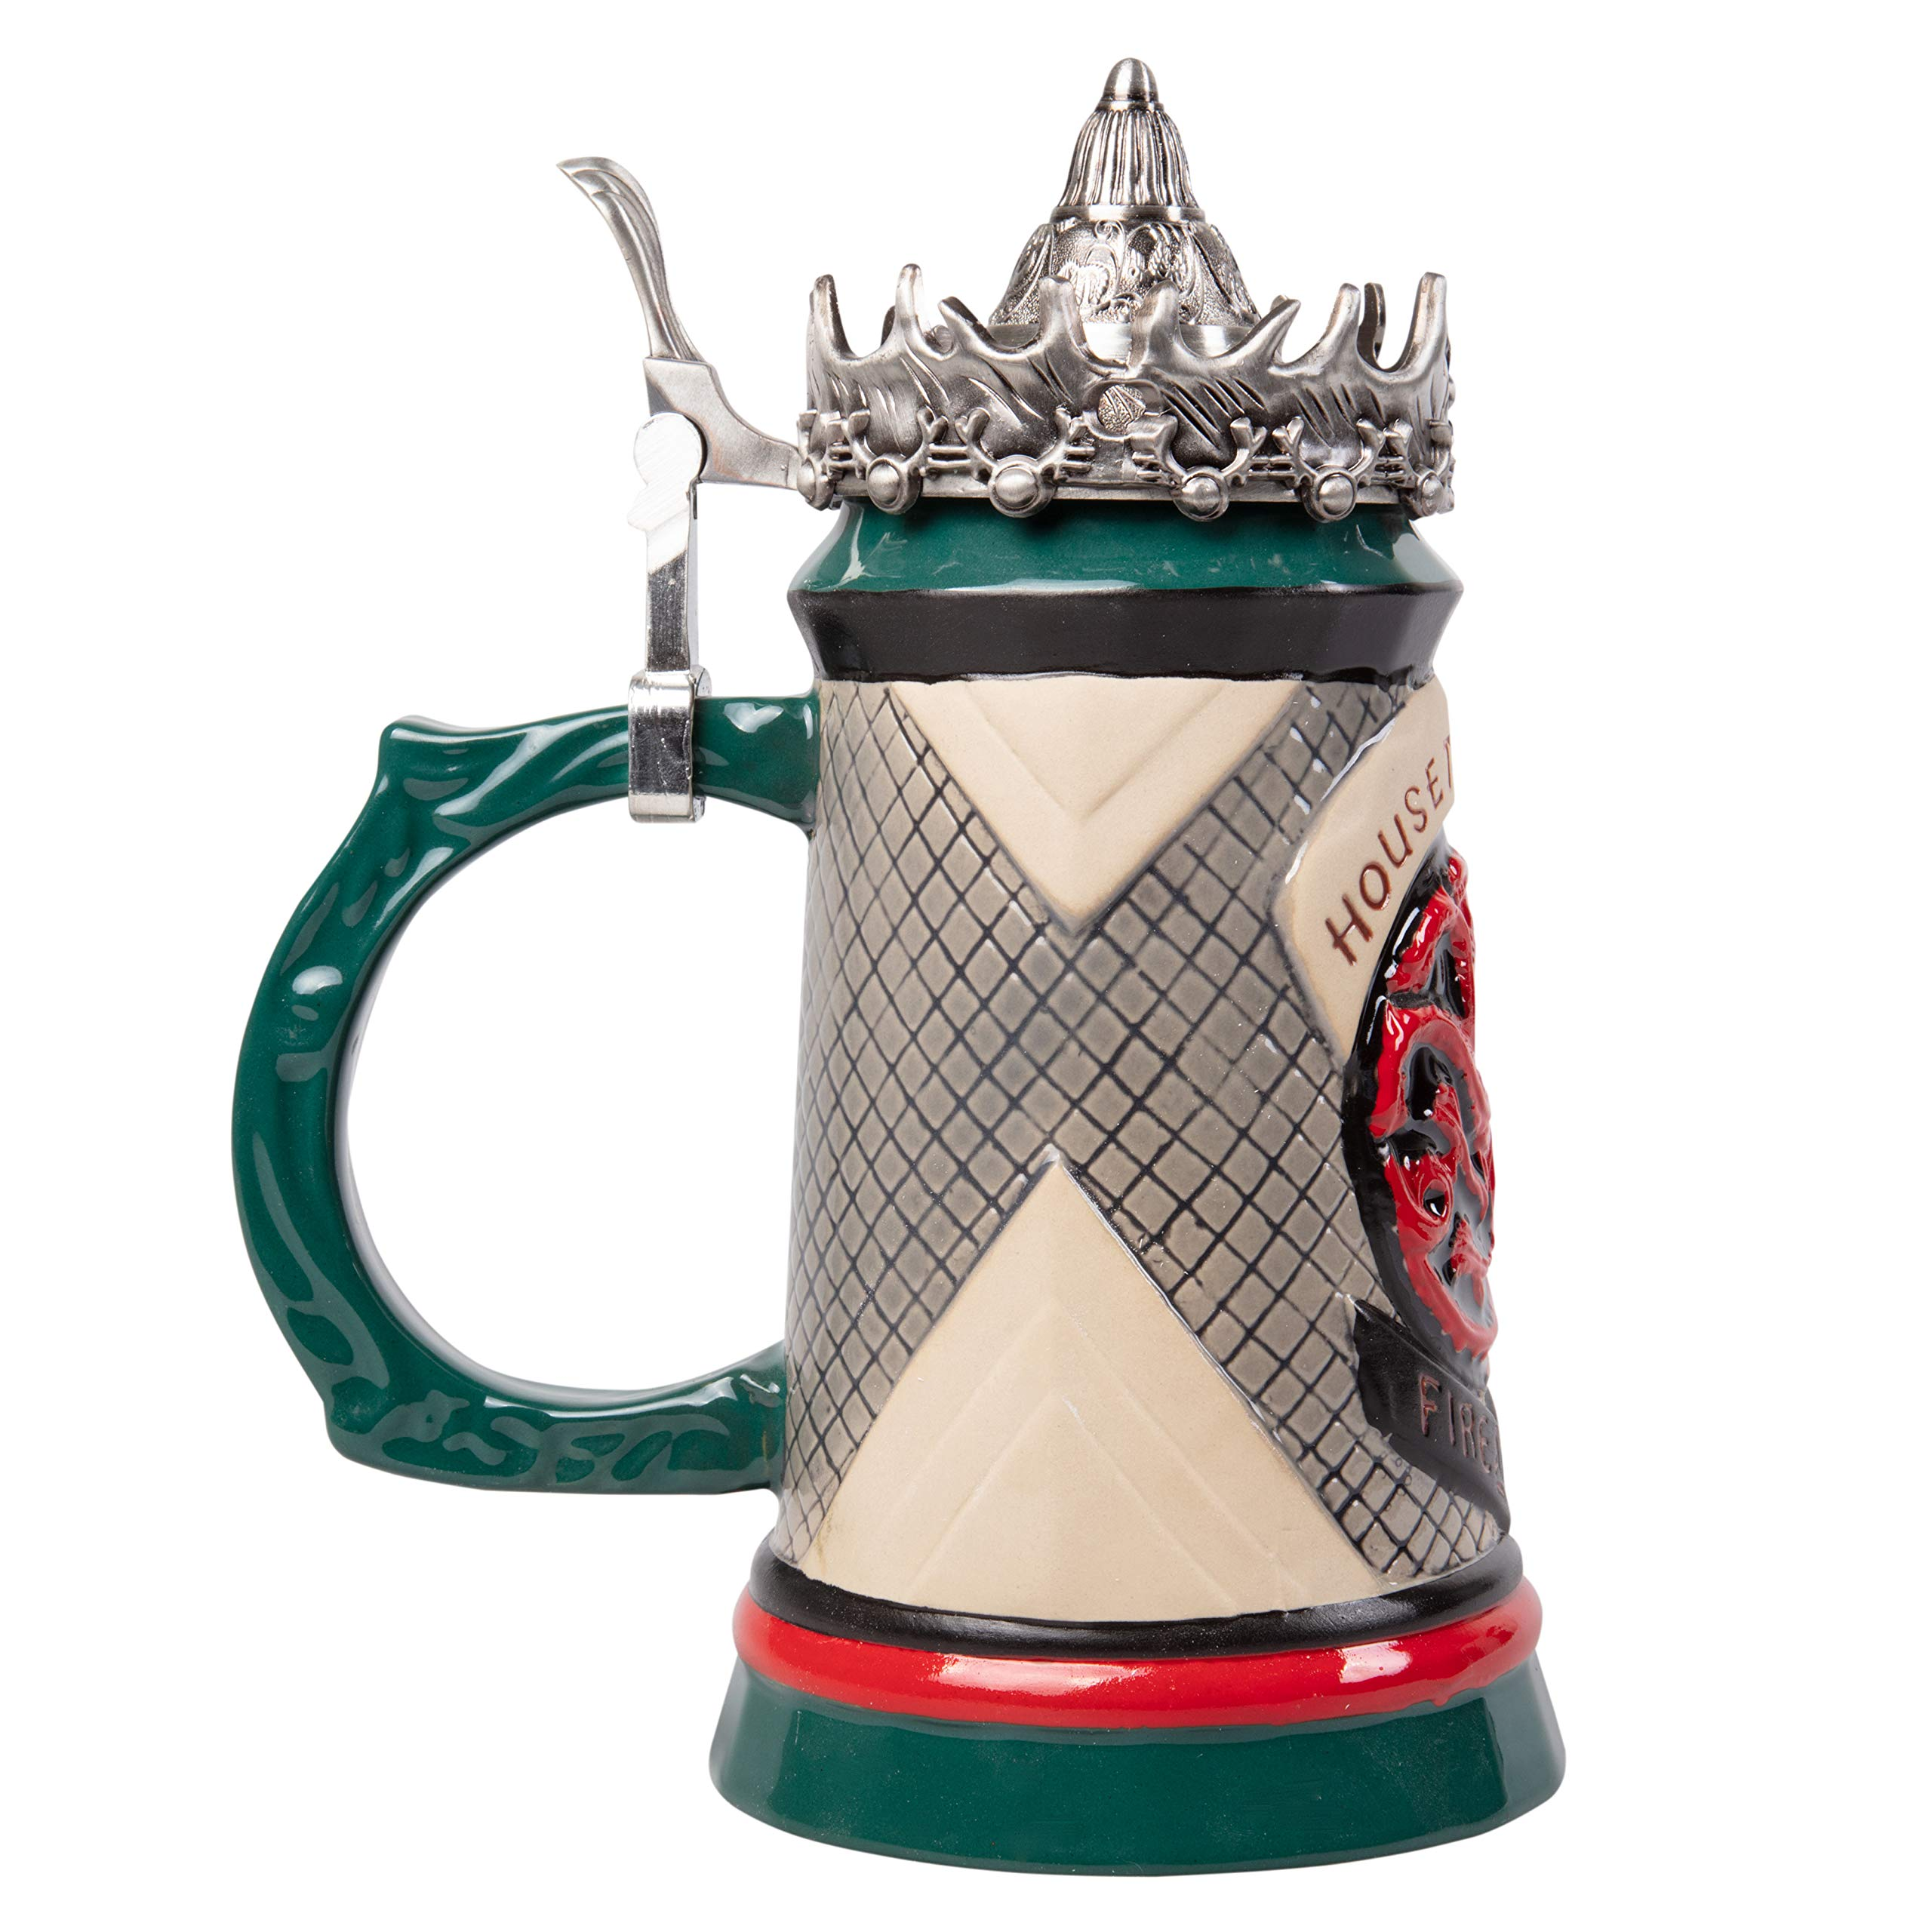 Game of Thrones House Targaryen Stein - 22 Oz Ceramic Base with Pewter Baratheon Crown Top by Game of Thrones (Image #5)